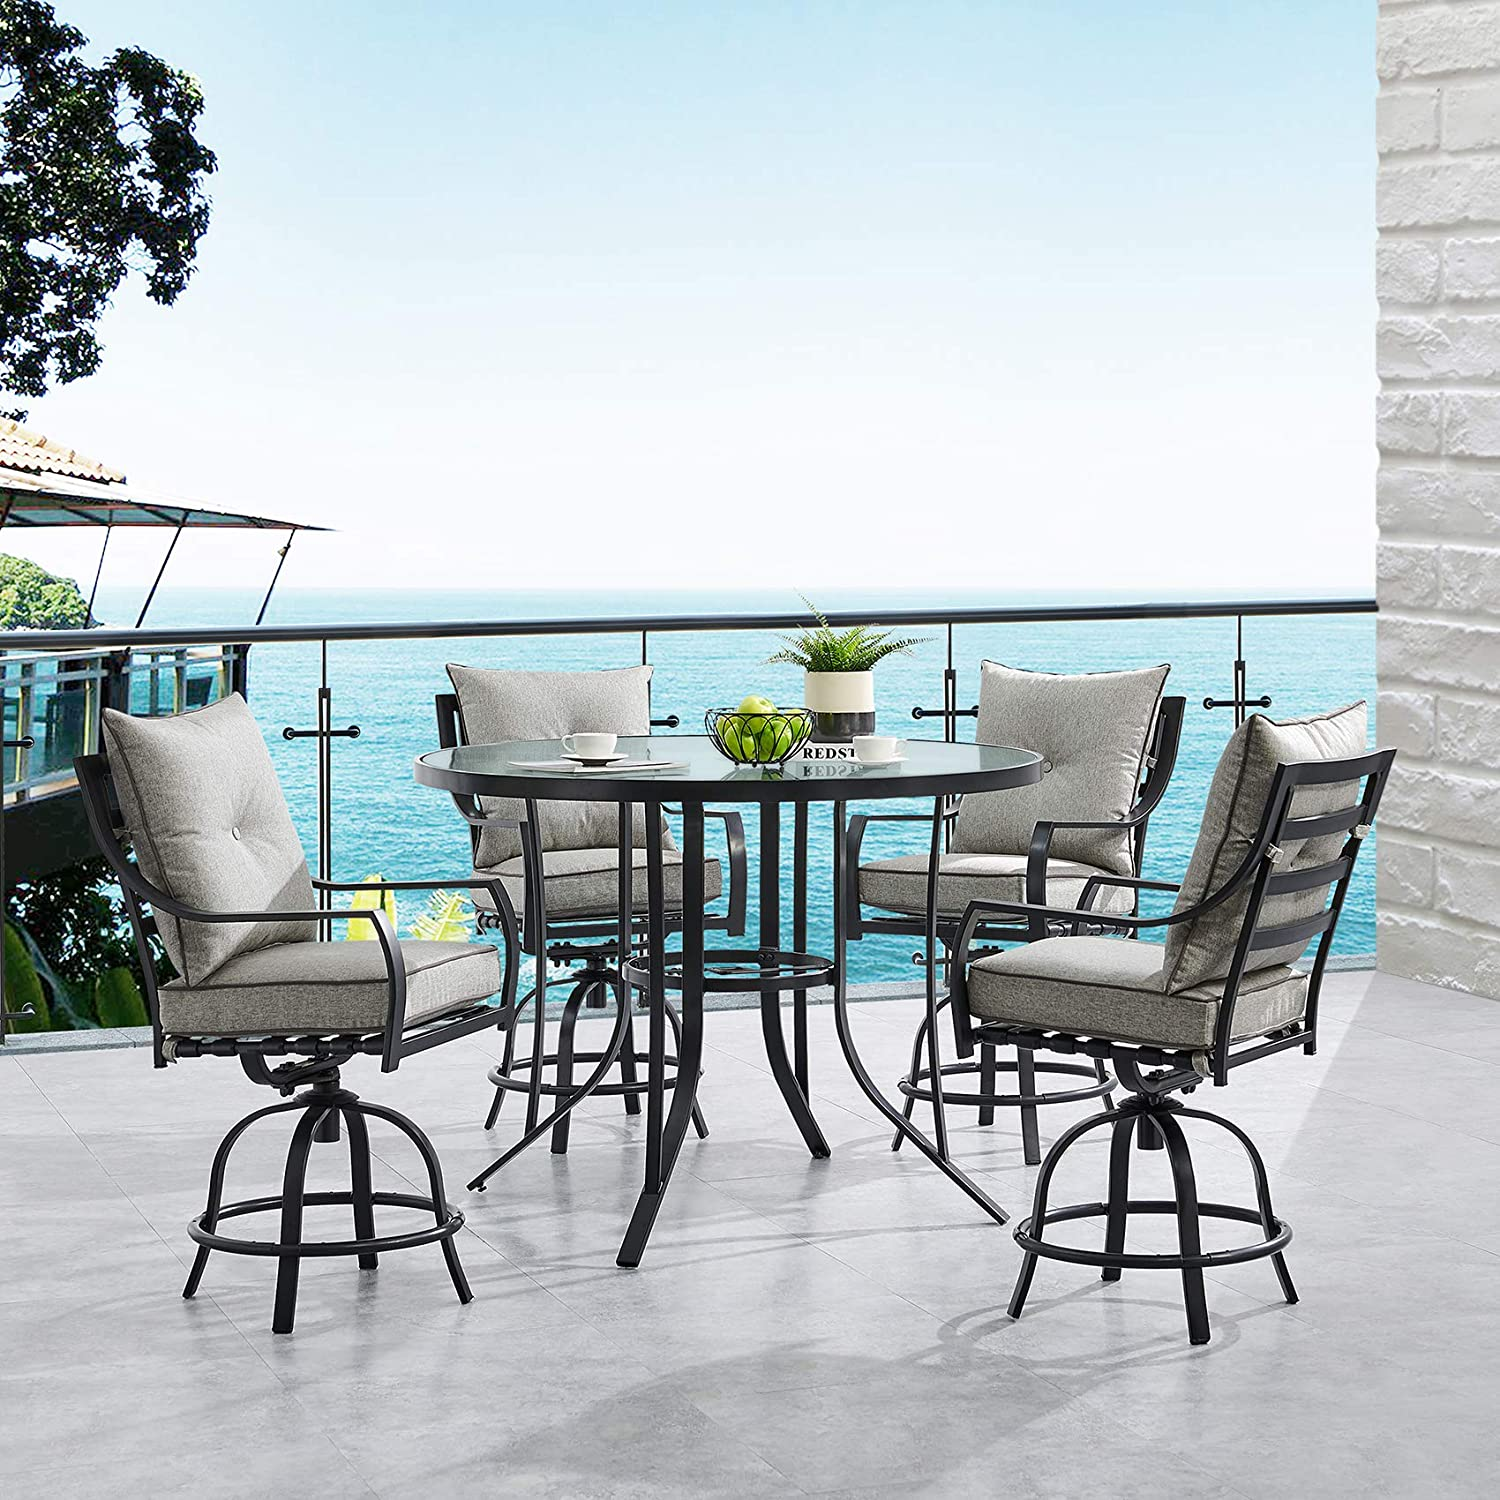 Hanover LAVDN5PCBR-SLV Lavallette 5-Piece Counter-Height Silver Linings with 4 Swivel Chairs and a 52-in. Round Glass-Top Table Outdoor Dining Set